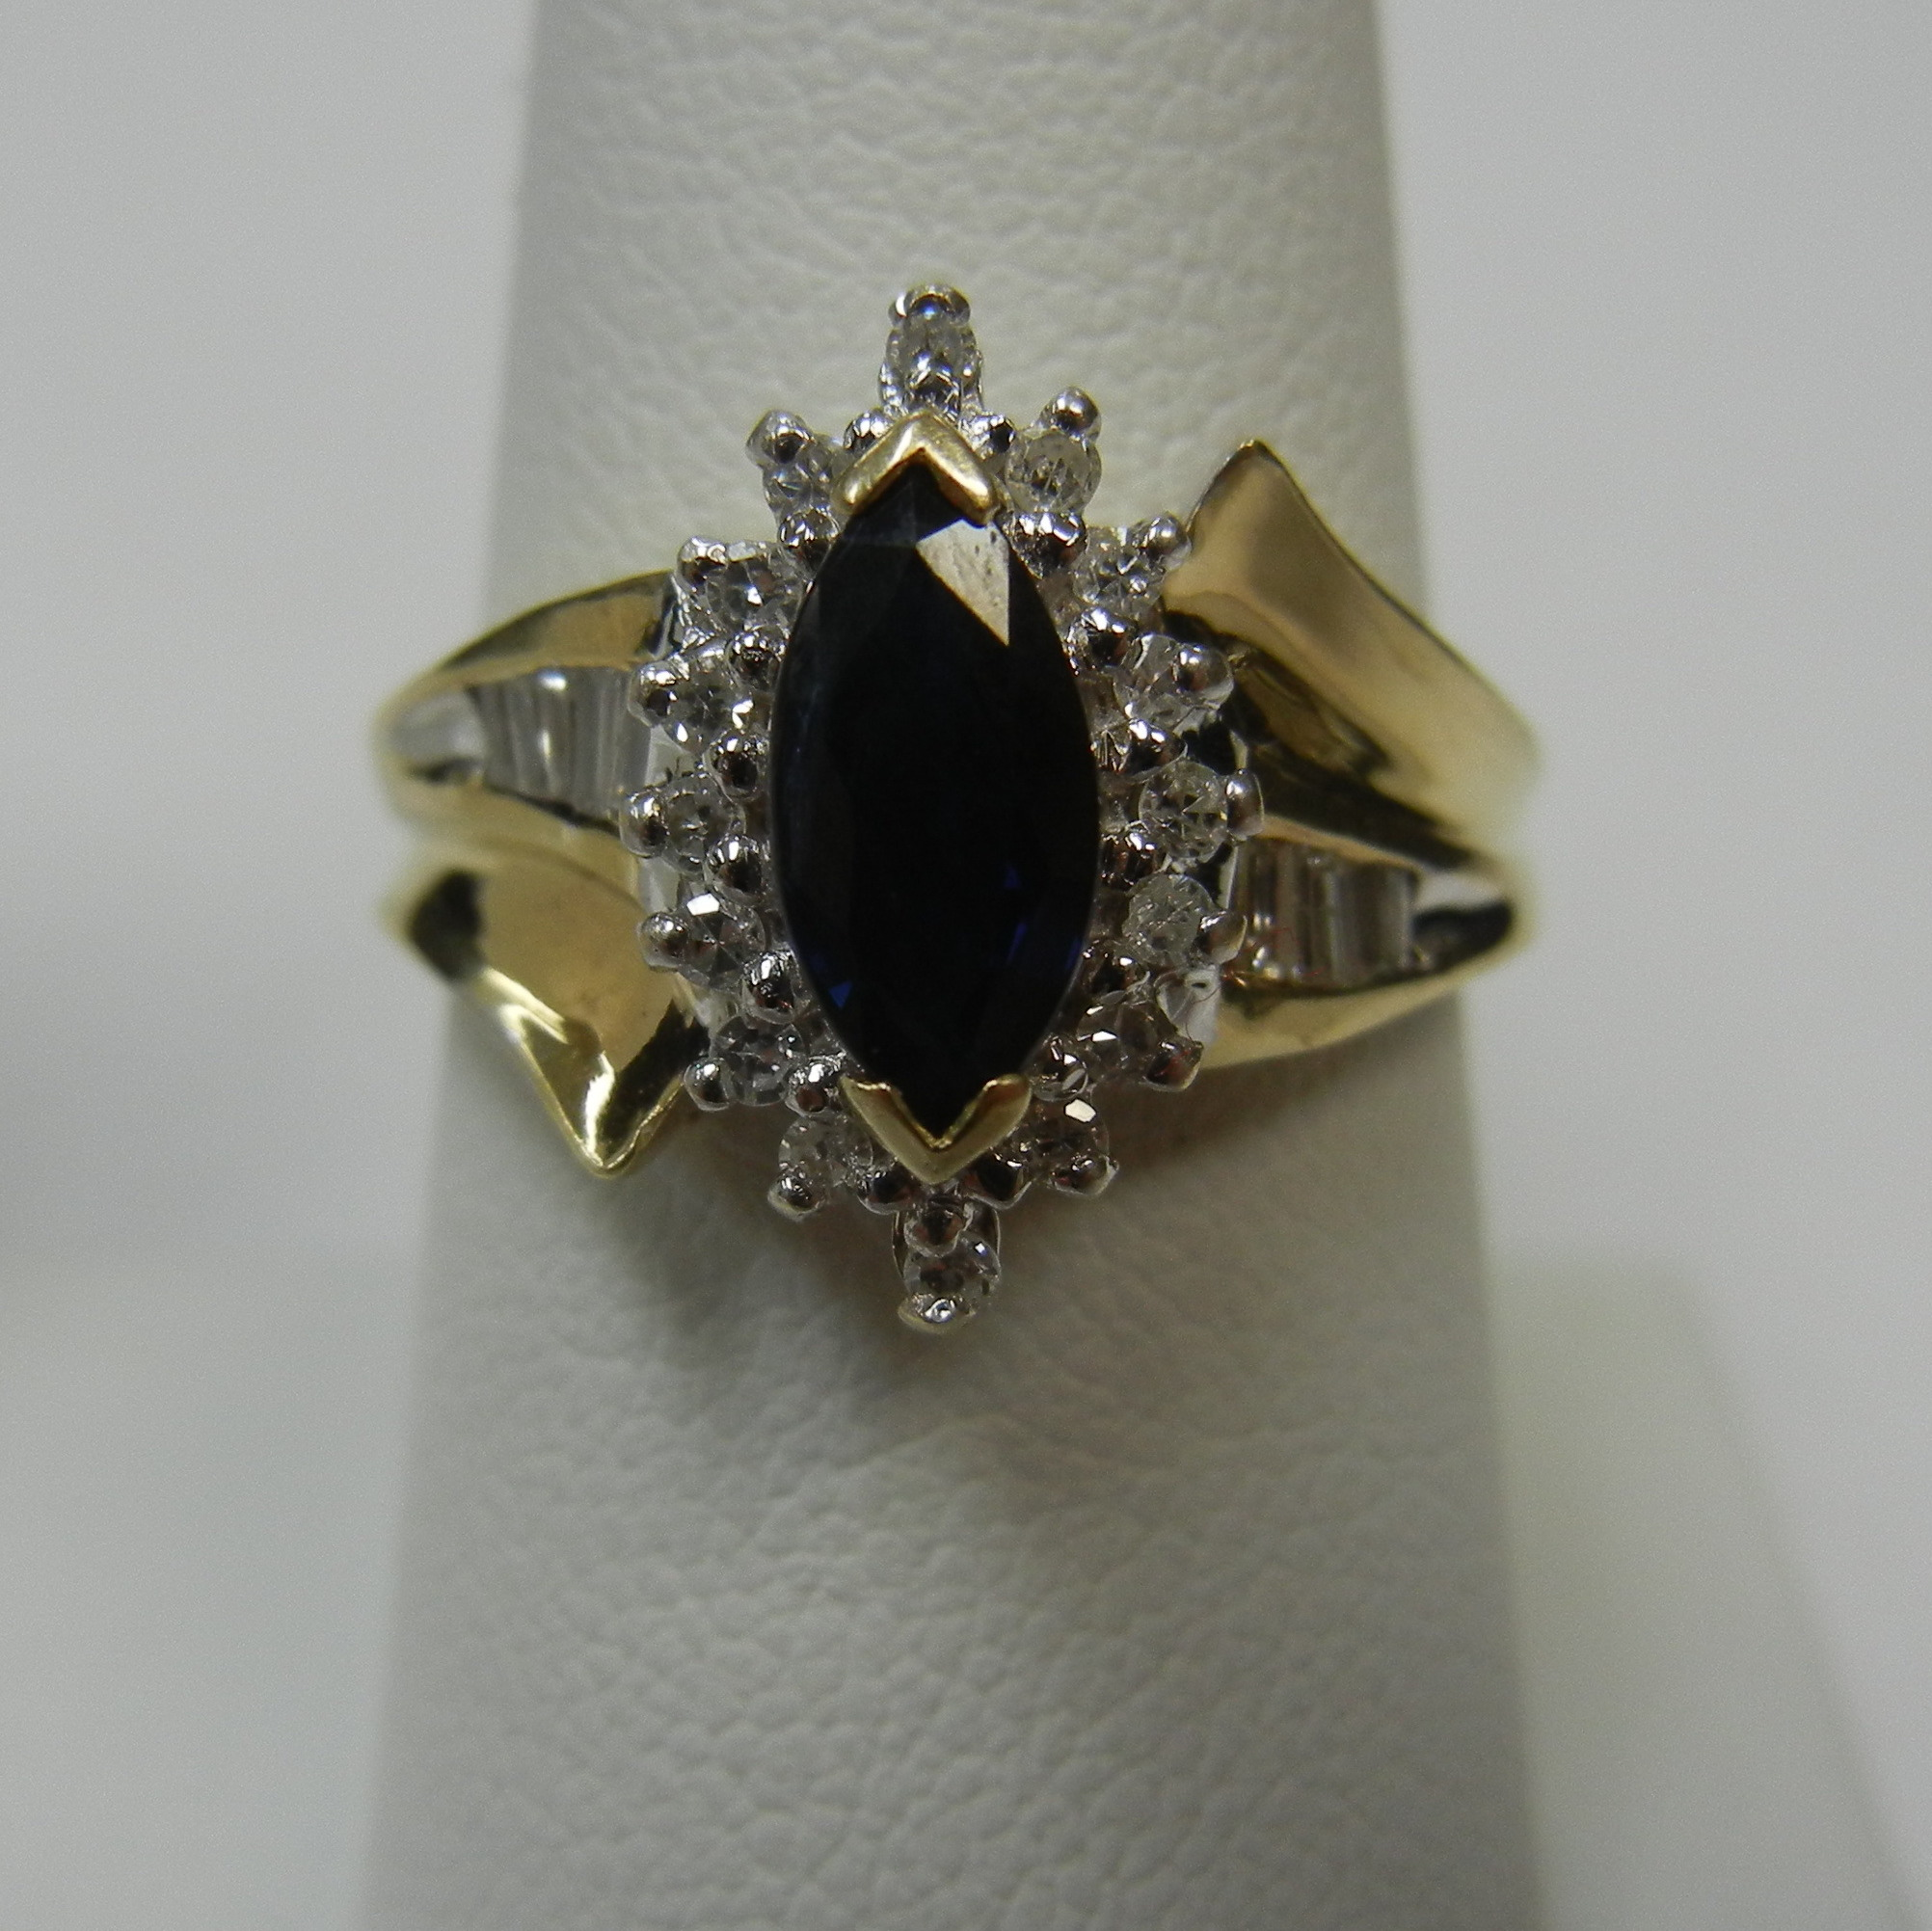 14 KT TWO TONE GOLD RING WITH DARK BLUE MARQUISE CUT STONE - SIZE 7